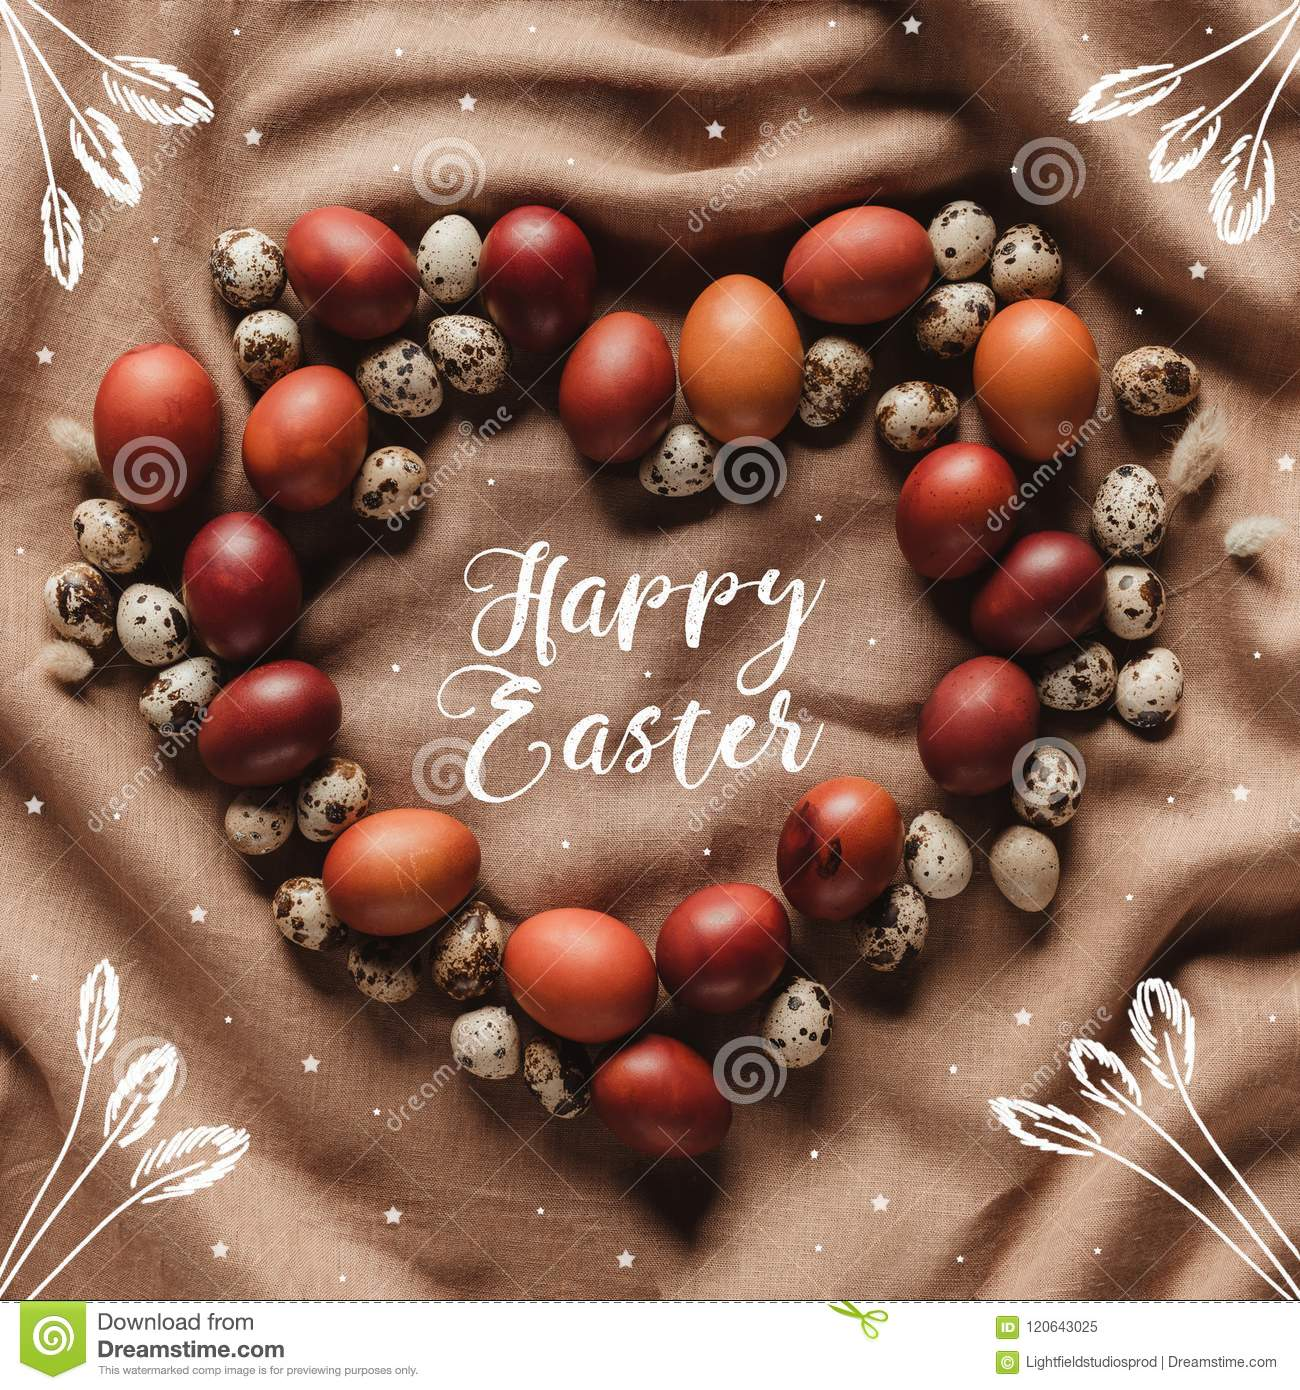 top view of heart shaped frame made of chicken and quail eggs with Happy Easter lettering, stars